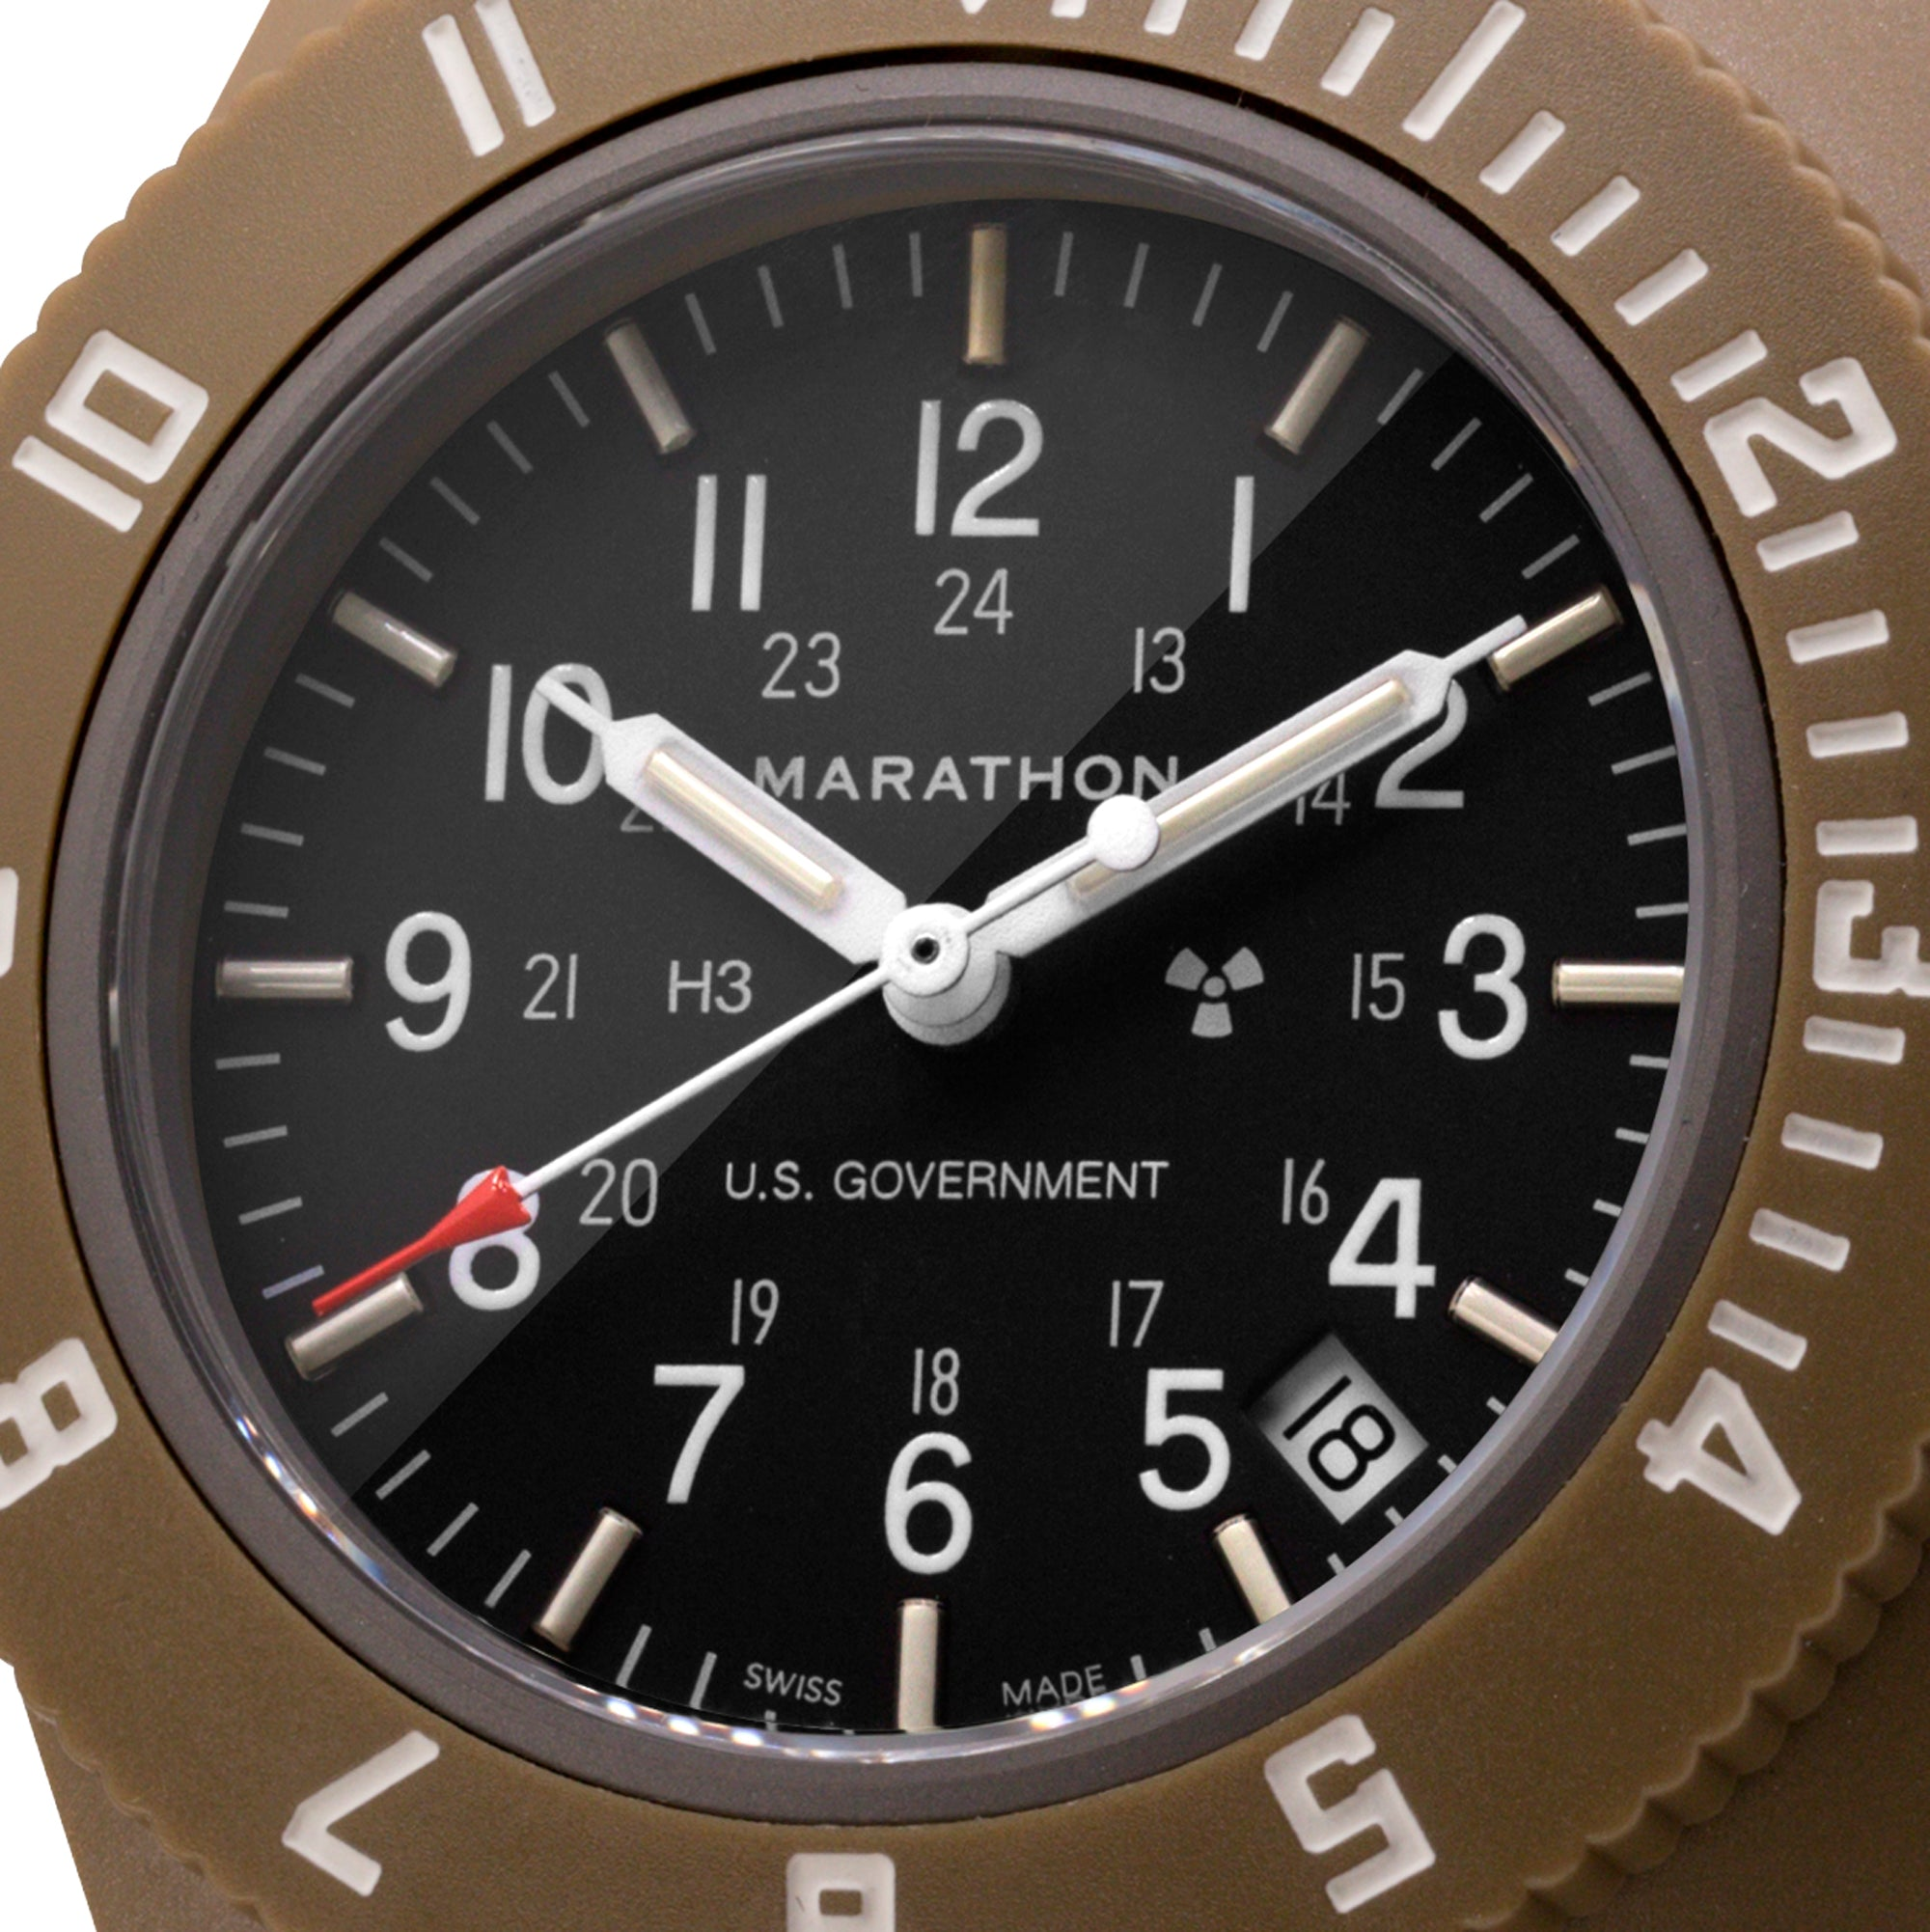 Desert Tan Pilot's Navigator with Date - US Government Markings - 41mm - marathonwatch